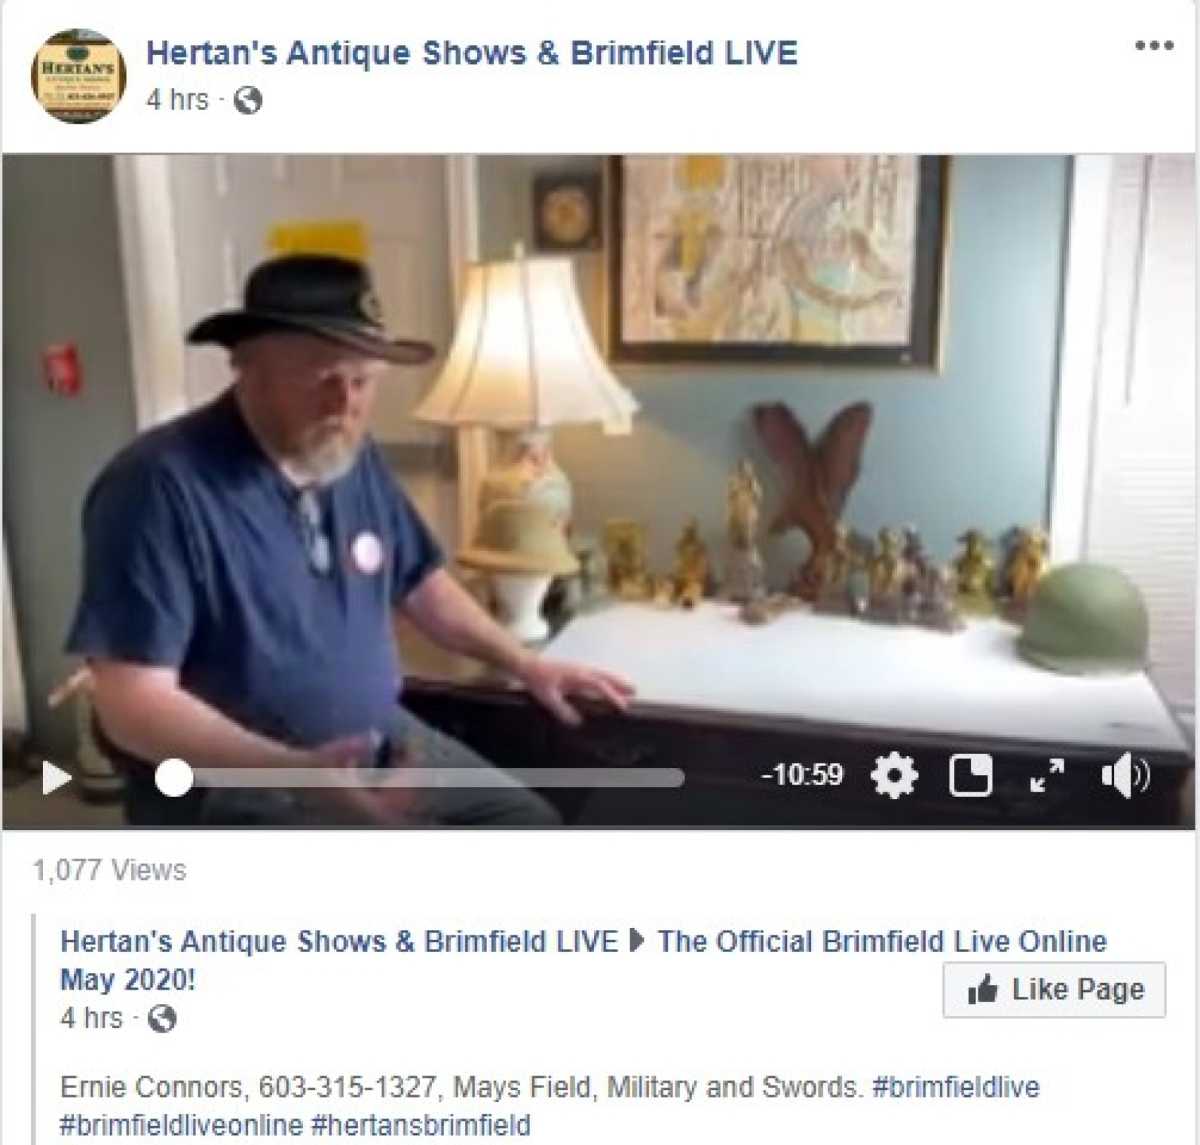 Ernie Connors, speaking from New Hampshire, gave a video walkthrough of things he has been collecting over the years. Items included a Civil War flask ($100); a pith helmet made in India ($75); a World War II helmet ($50); a Civil War sword with engraved blade ($500); and a Civil War naval sword, signed PDL and imported for Tiffany & Co. ($850).   —Facebook, Brimfield Live